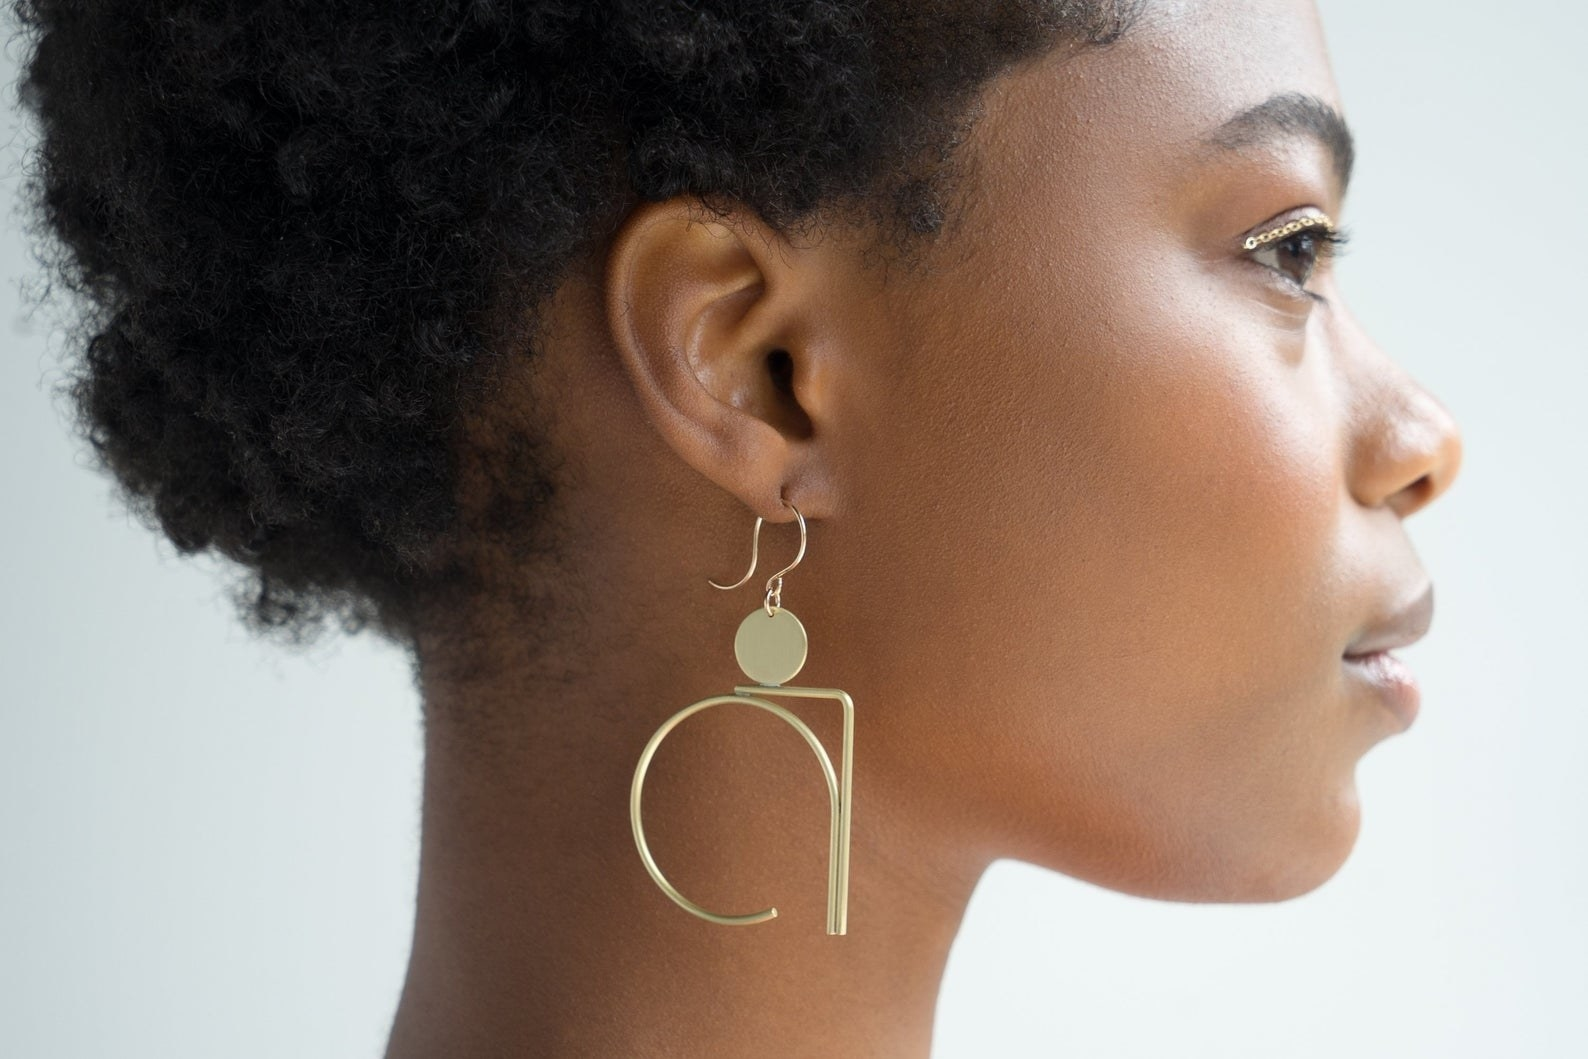 The dangle earrings with circular and L-shaped designs